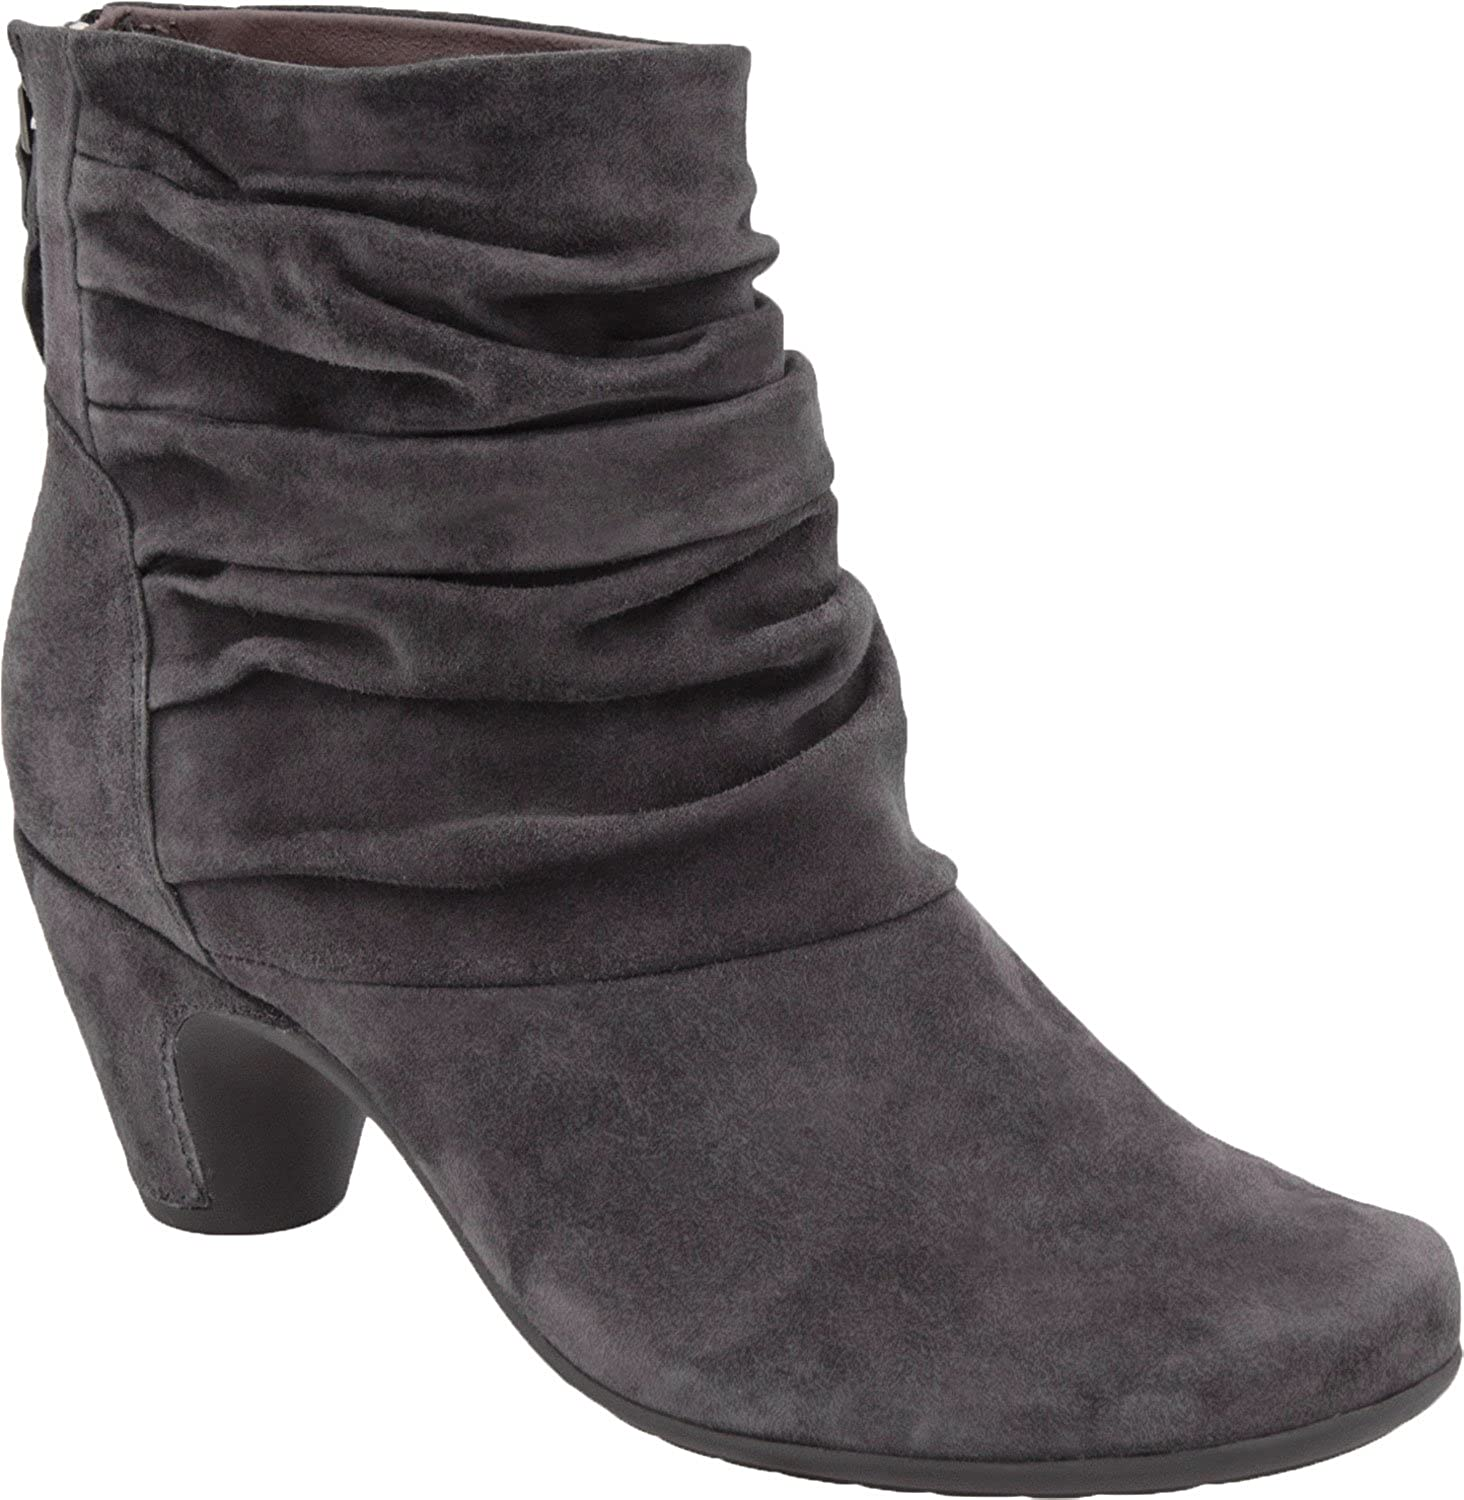 Earthies Women's Vicenza Ankle Boot